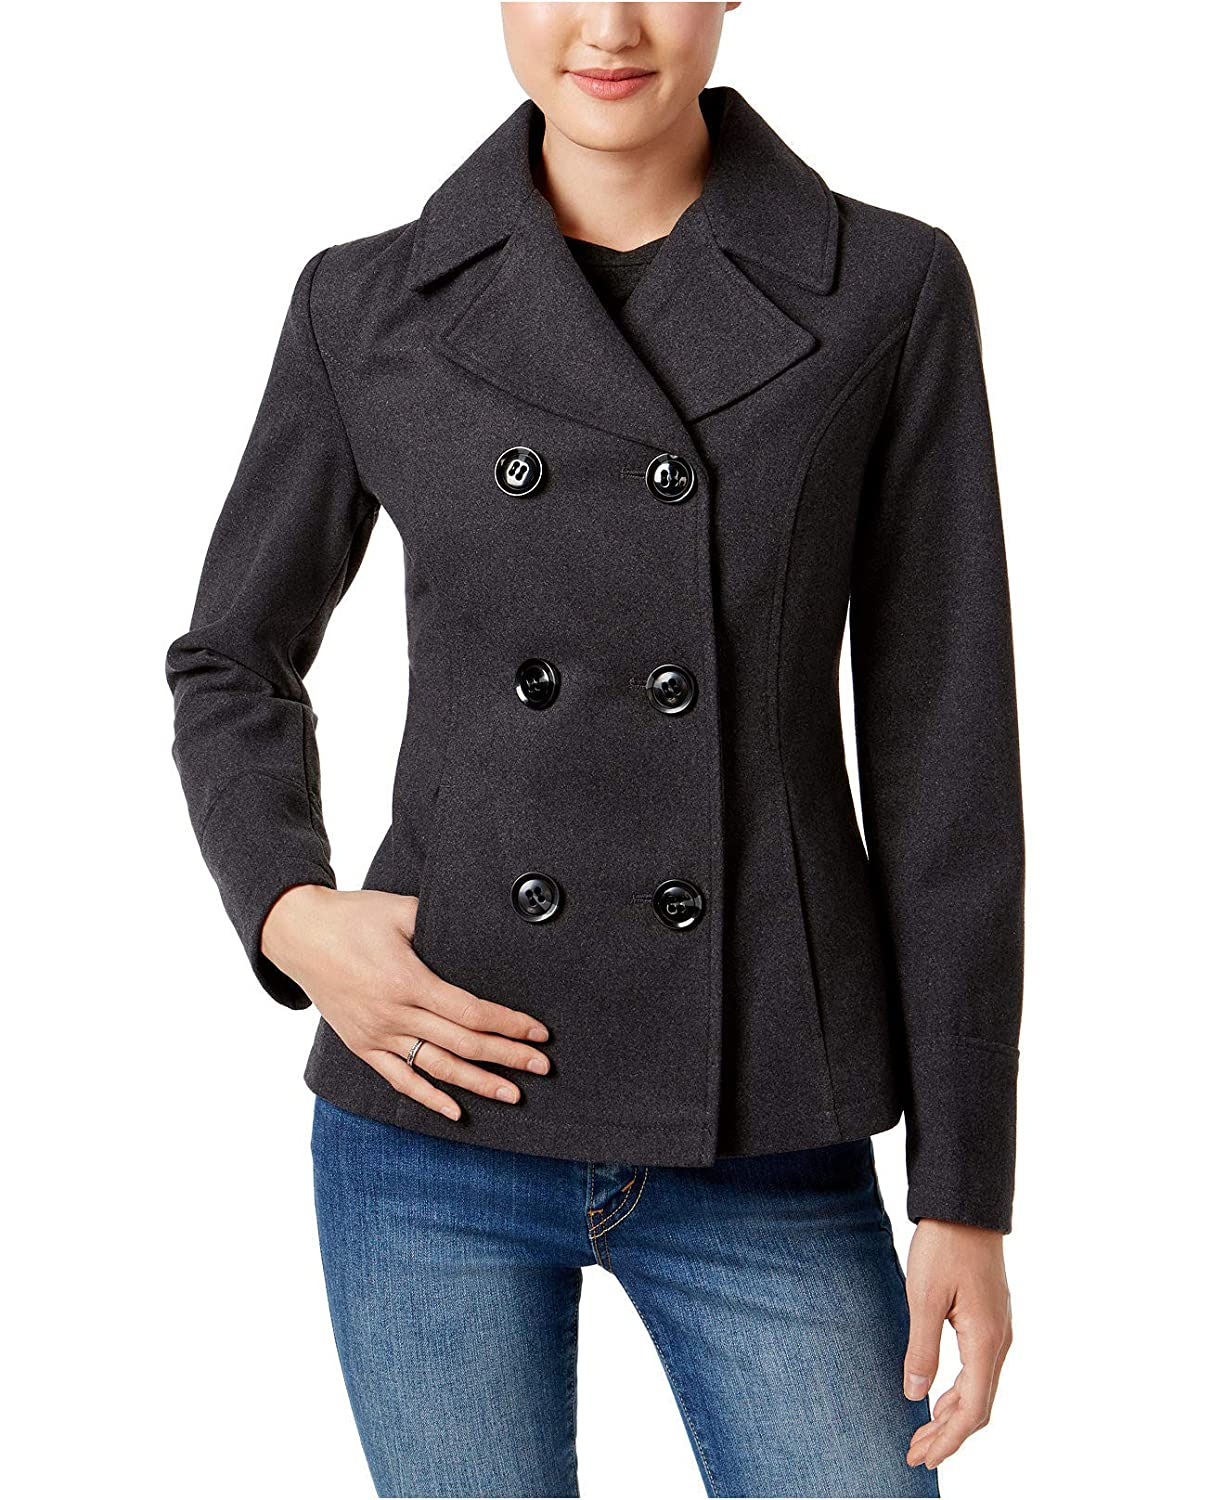 Charcoal CelebrityPink Womens Juniors Winter Warm Pea Coat